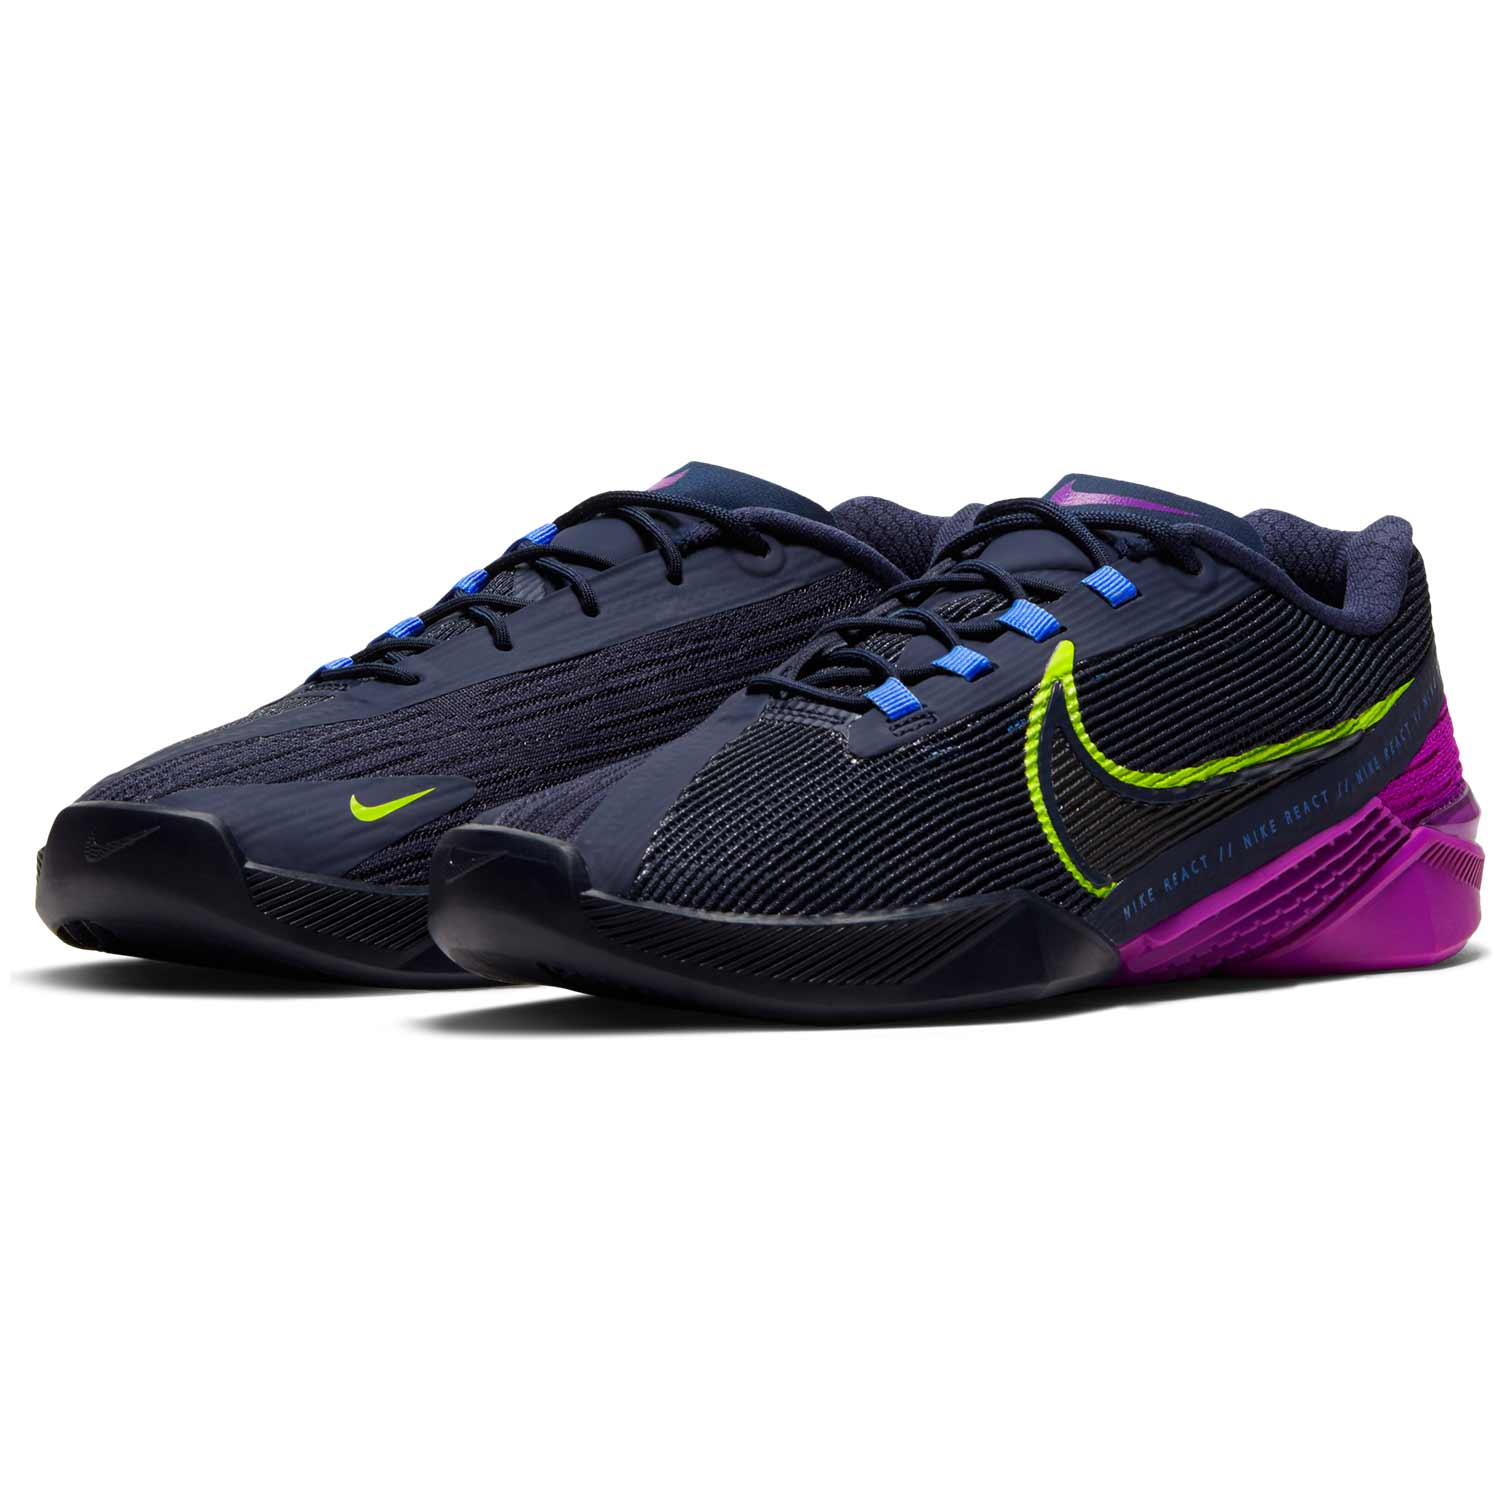 NIKE METCON REACT TURBOWomen's Training Shoes